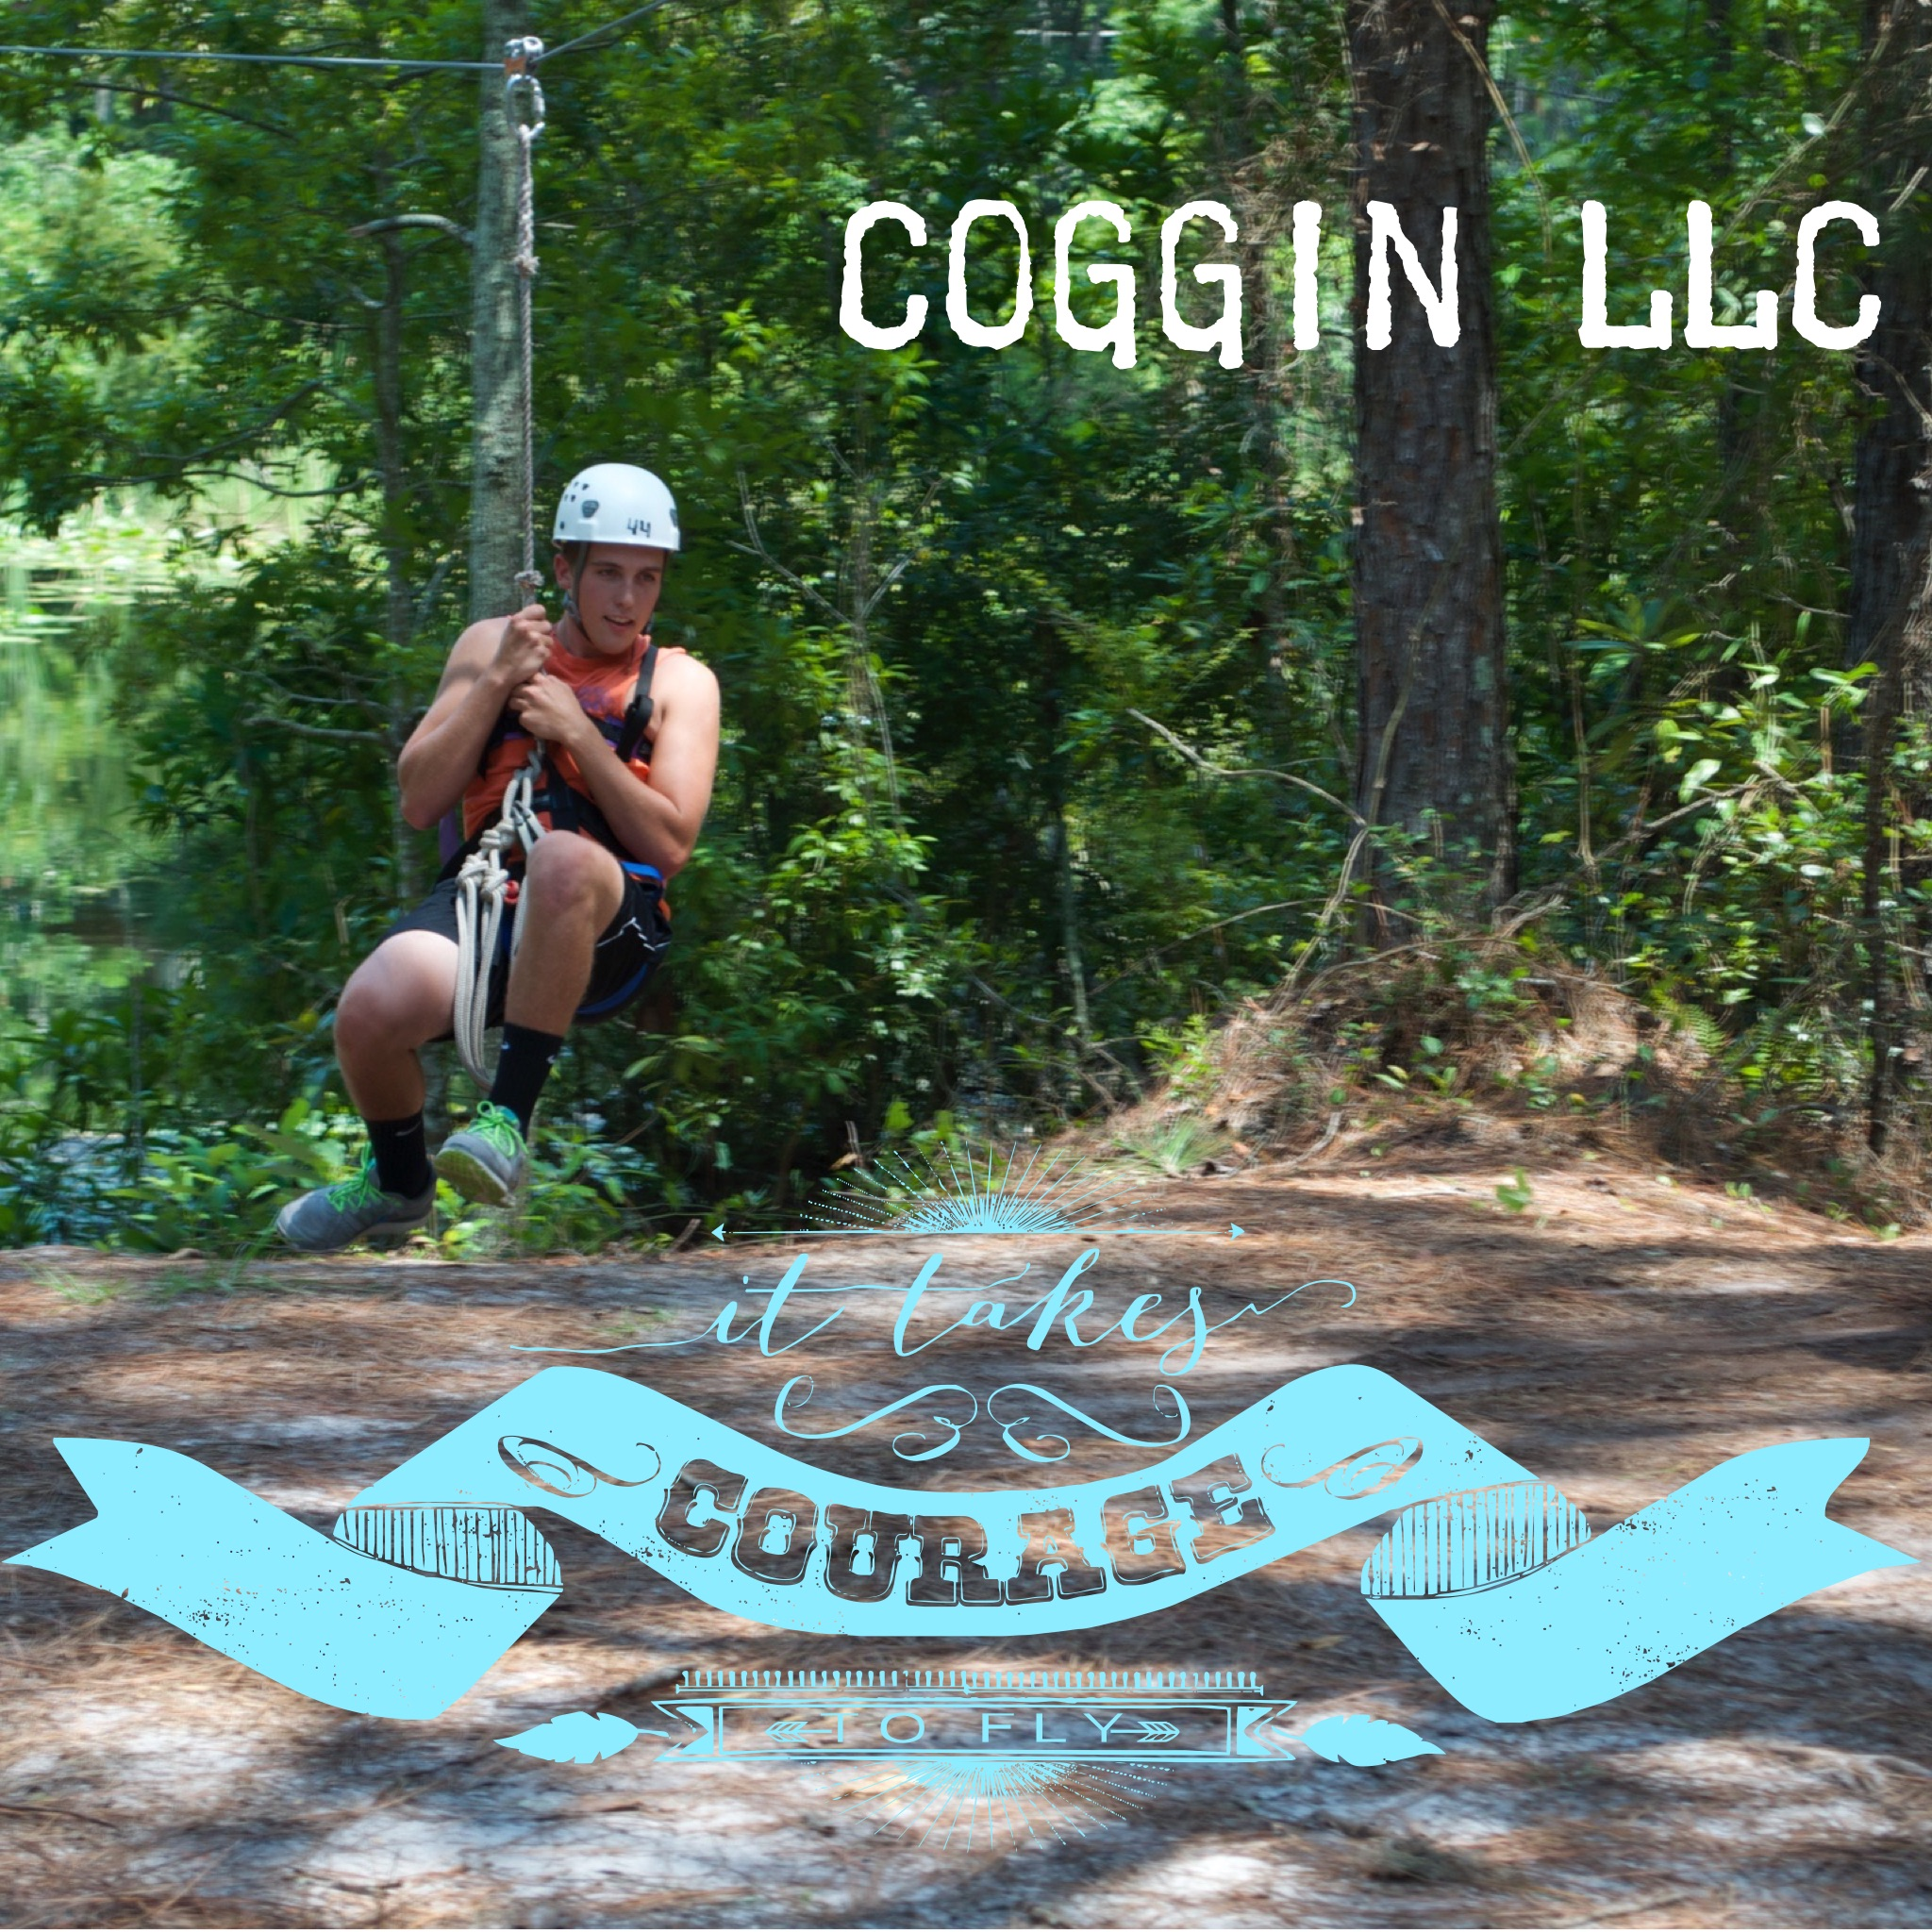 Coggin Courage to Fly photo of a  coggin and it takes courage to fly in a blue ribbon graphic on the bottom llc resident swinging from a rope with protective hear on in an open wodsy area with the word's coggin onto